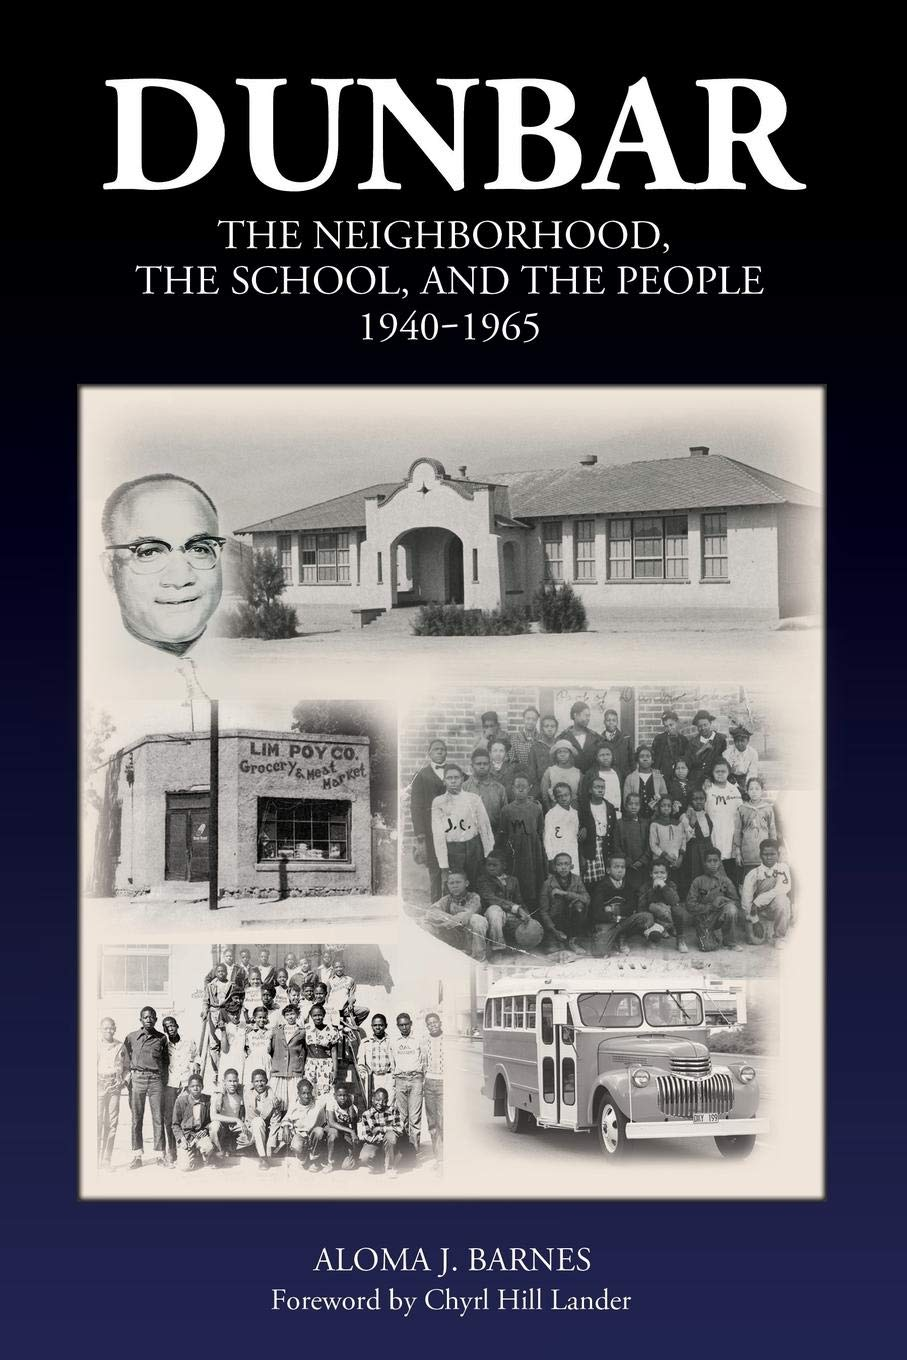 Dunbar: The Neighborhood, the School, and the People, 1940-65